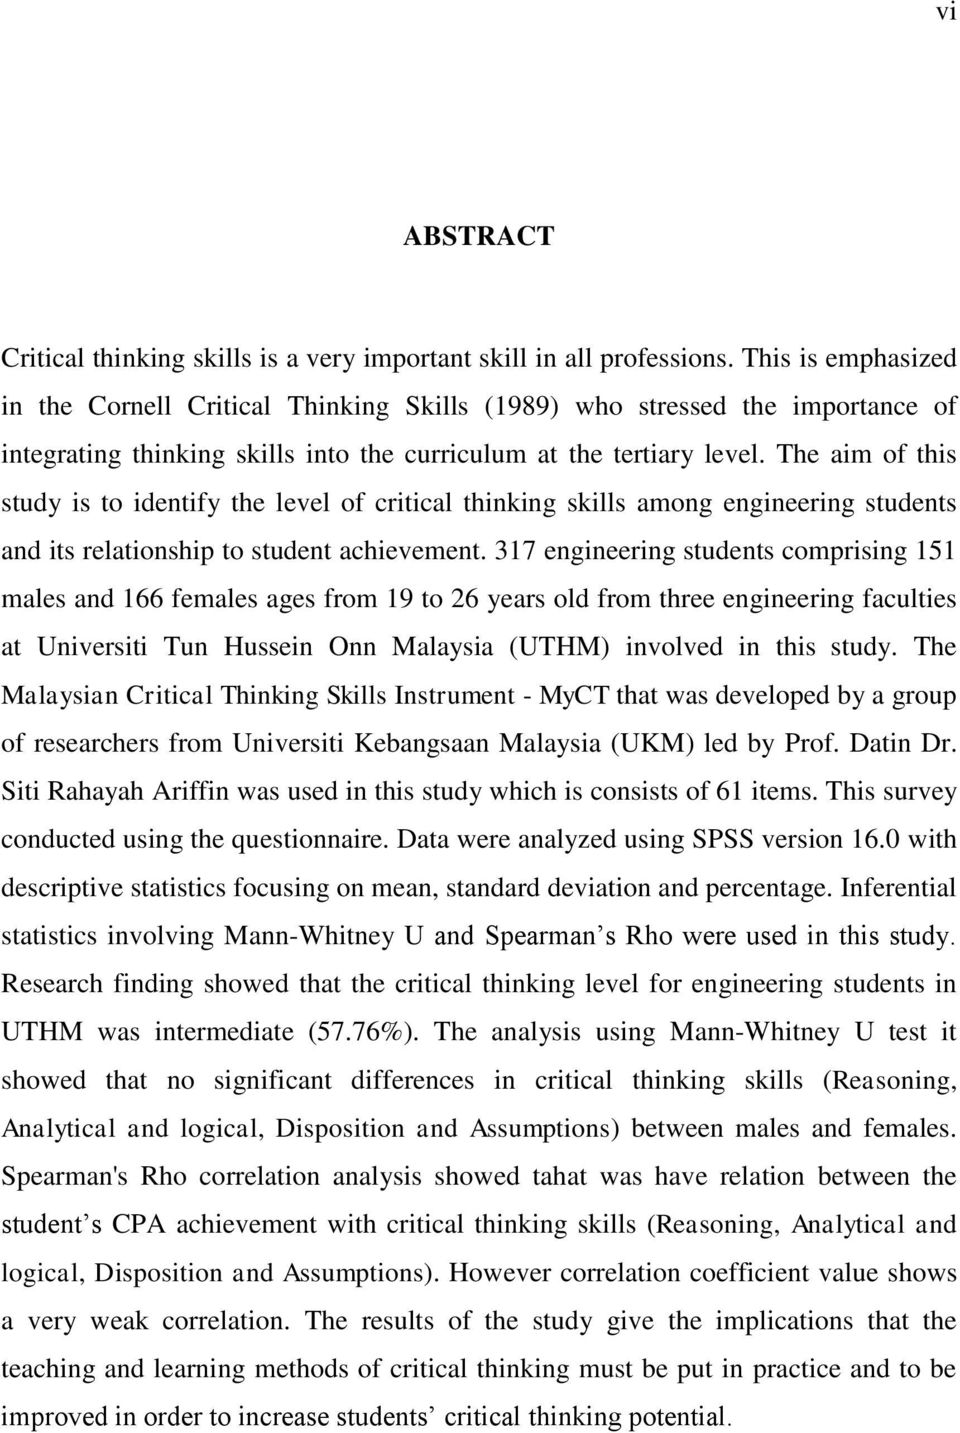 The aim of this study is to identify the level of critical thinking skills among engineering students and its relationship to student achievement.